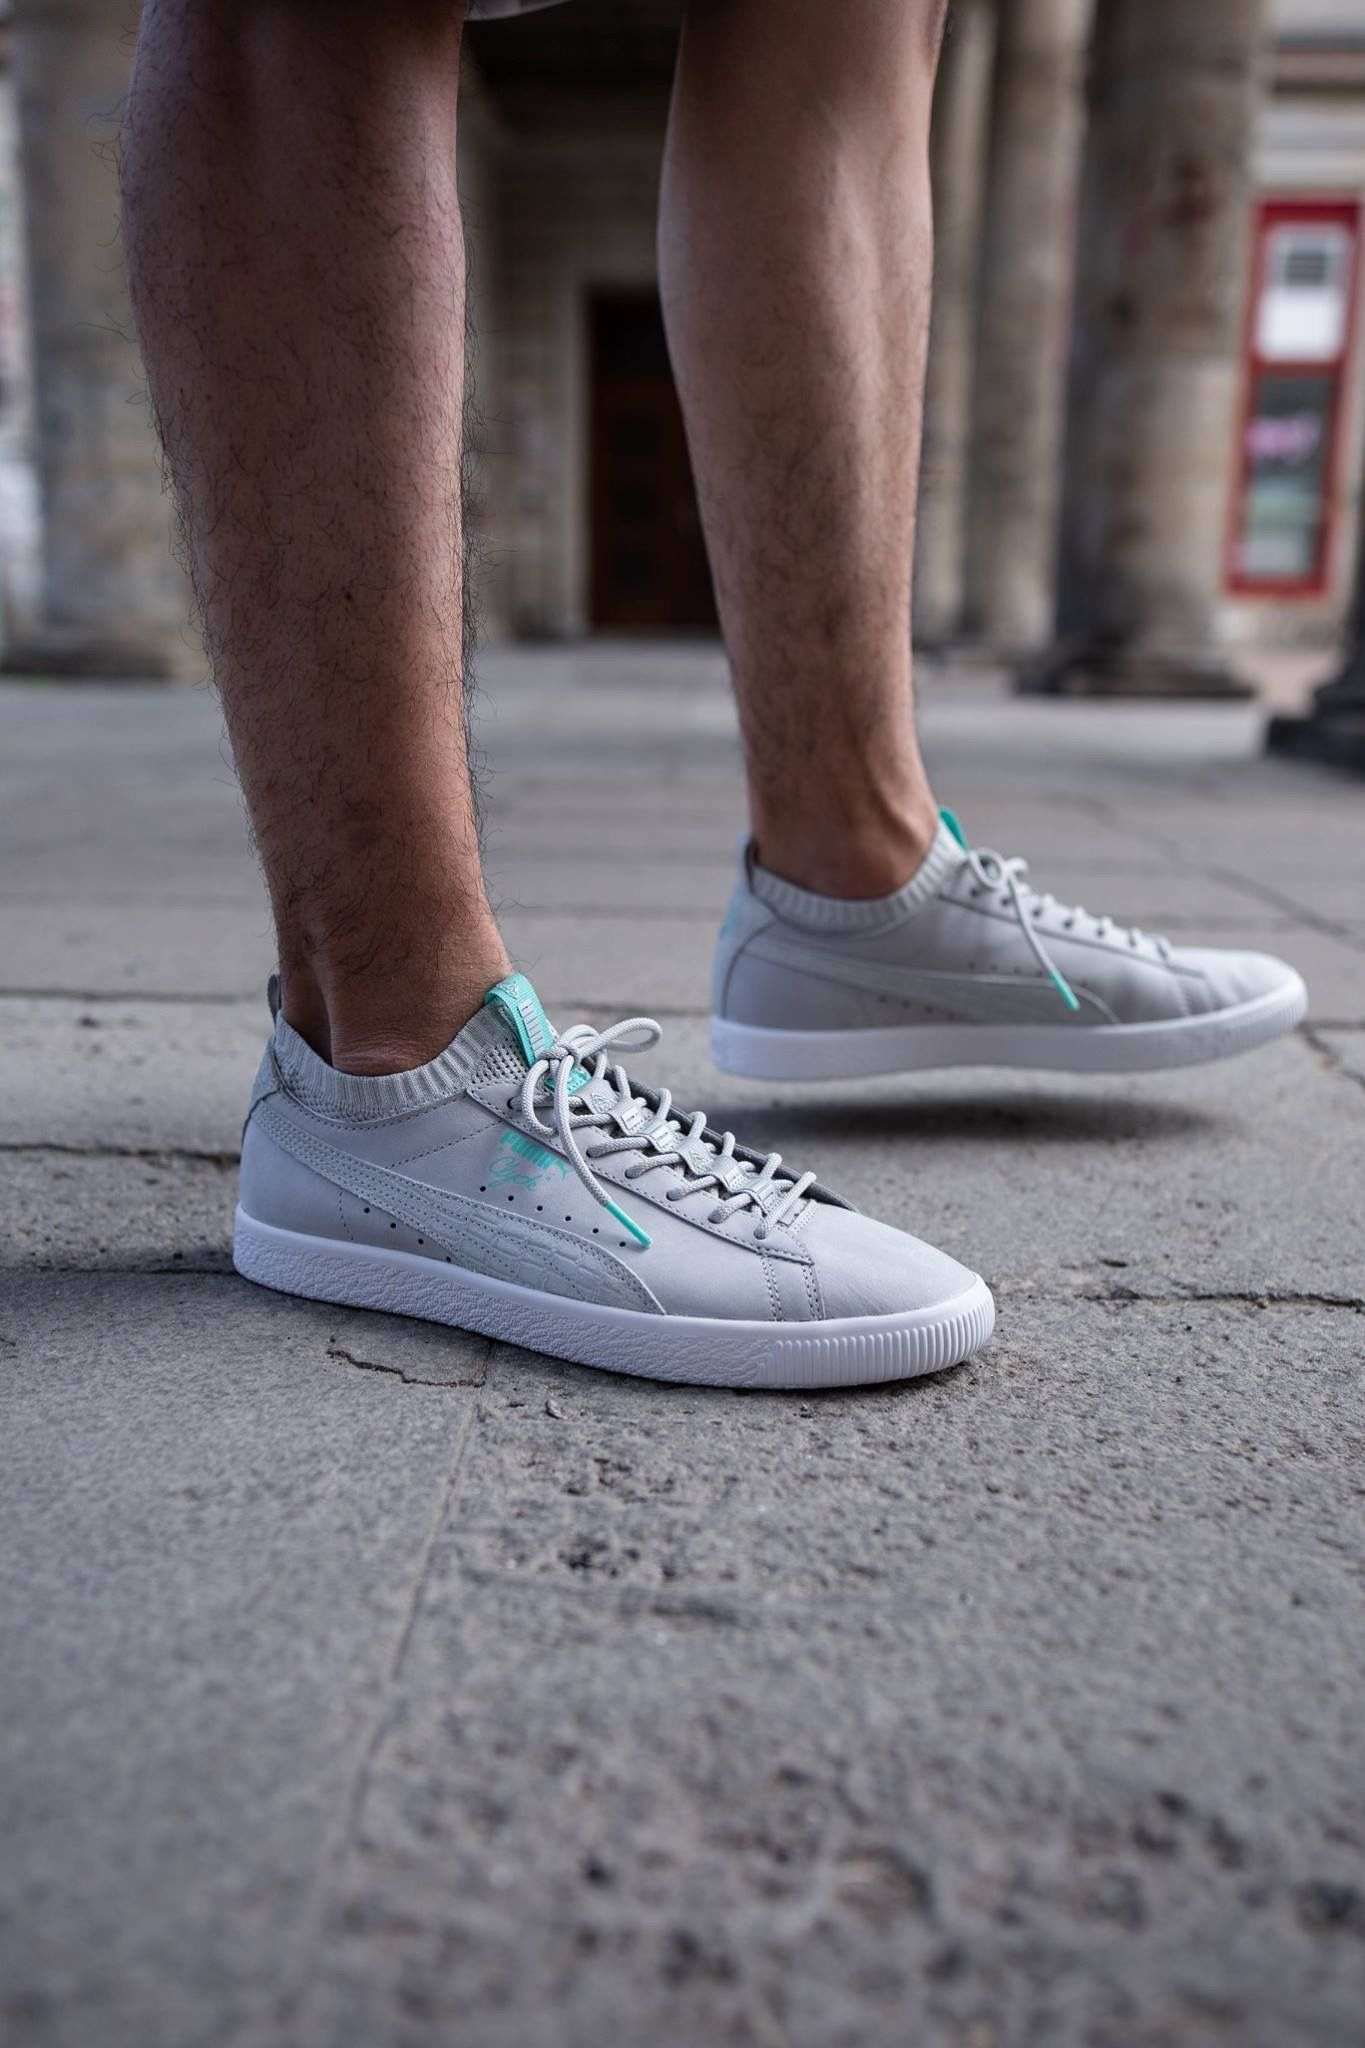 Diamond Supply Co x Puma Clyde Sock  79aea96420a1